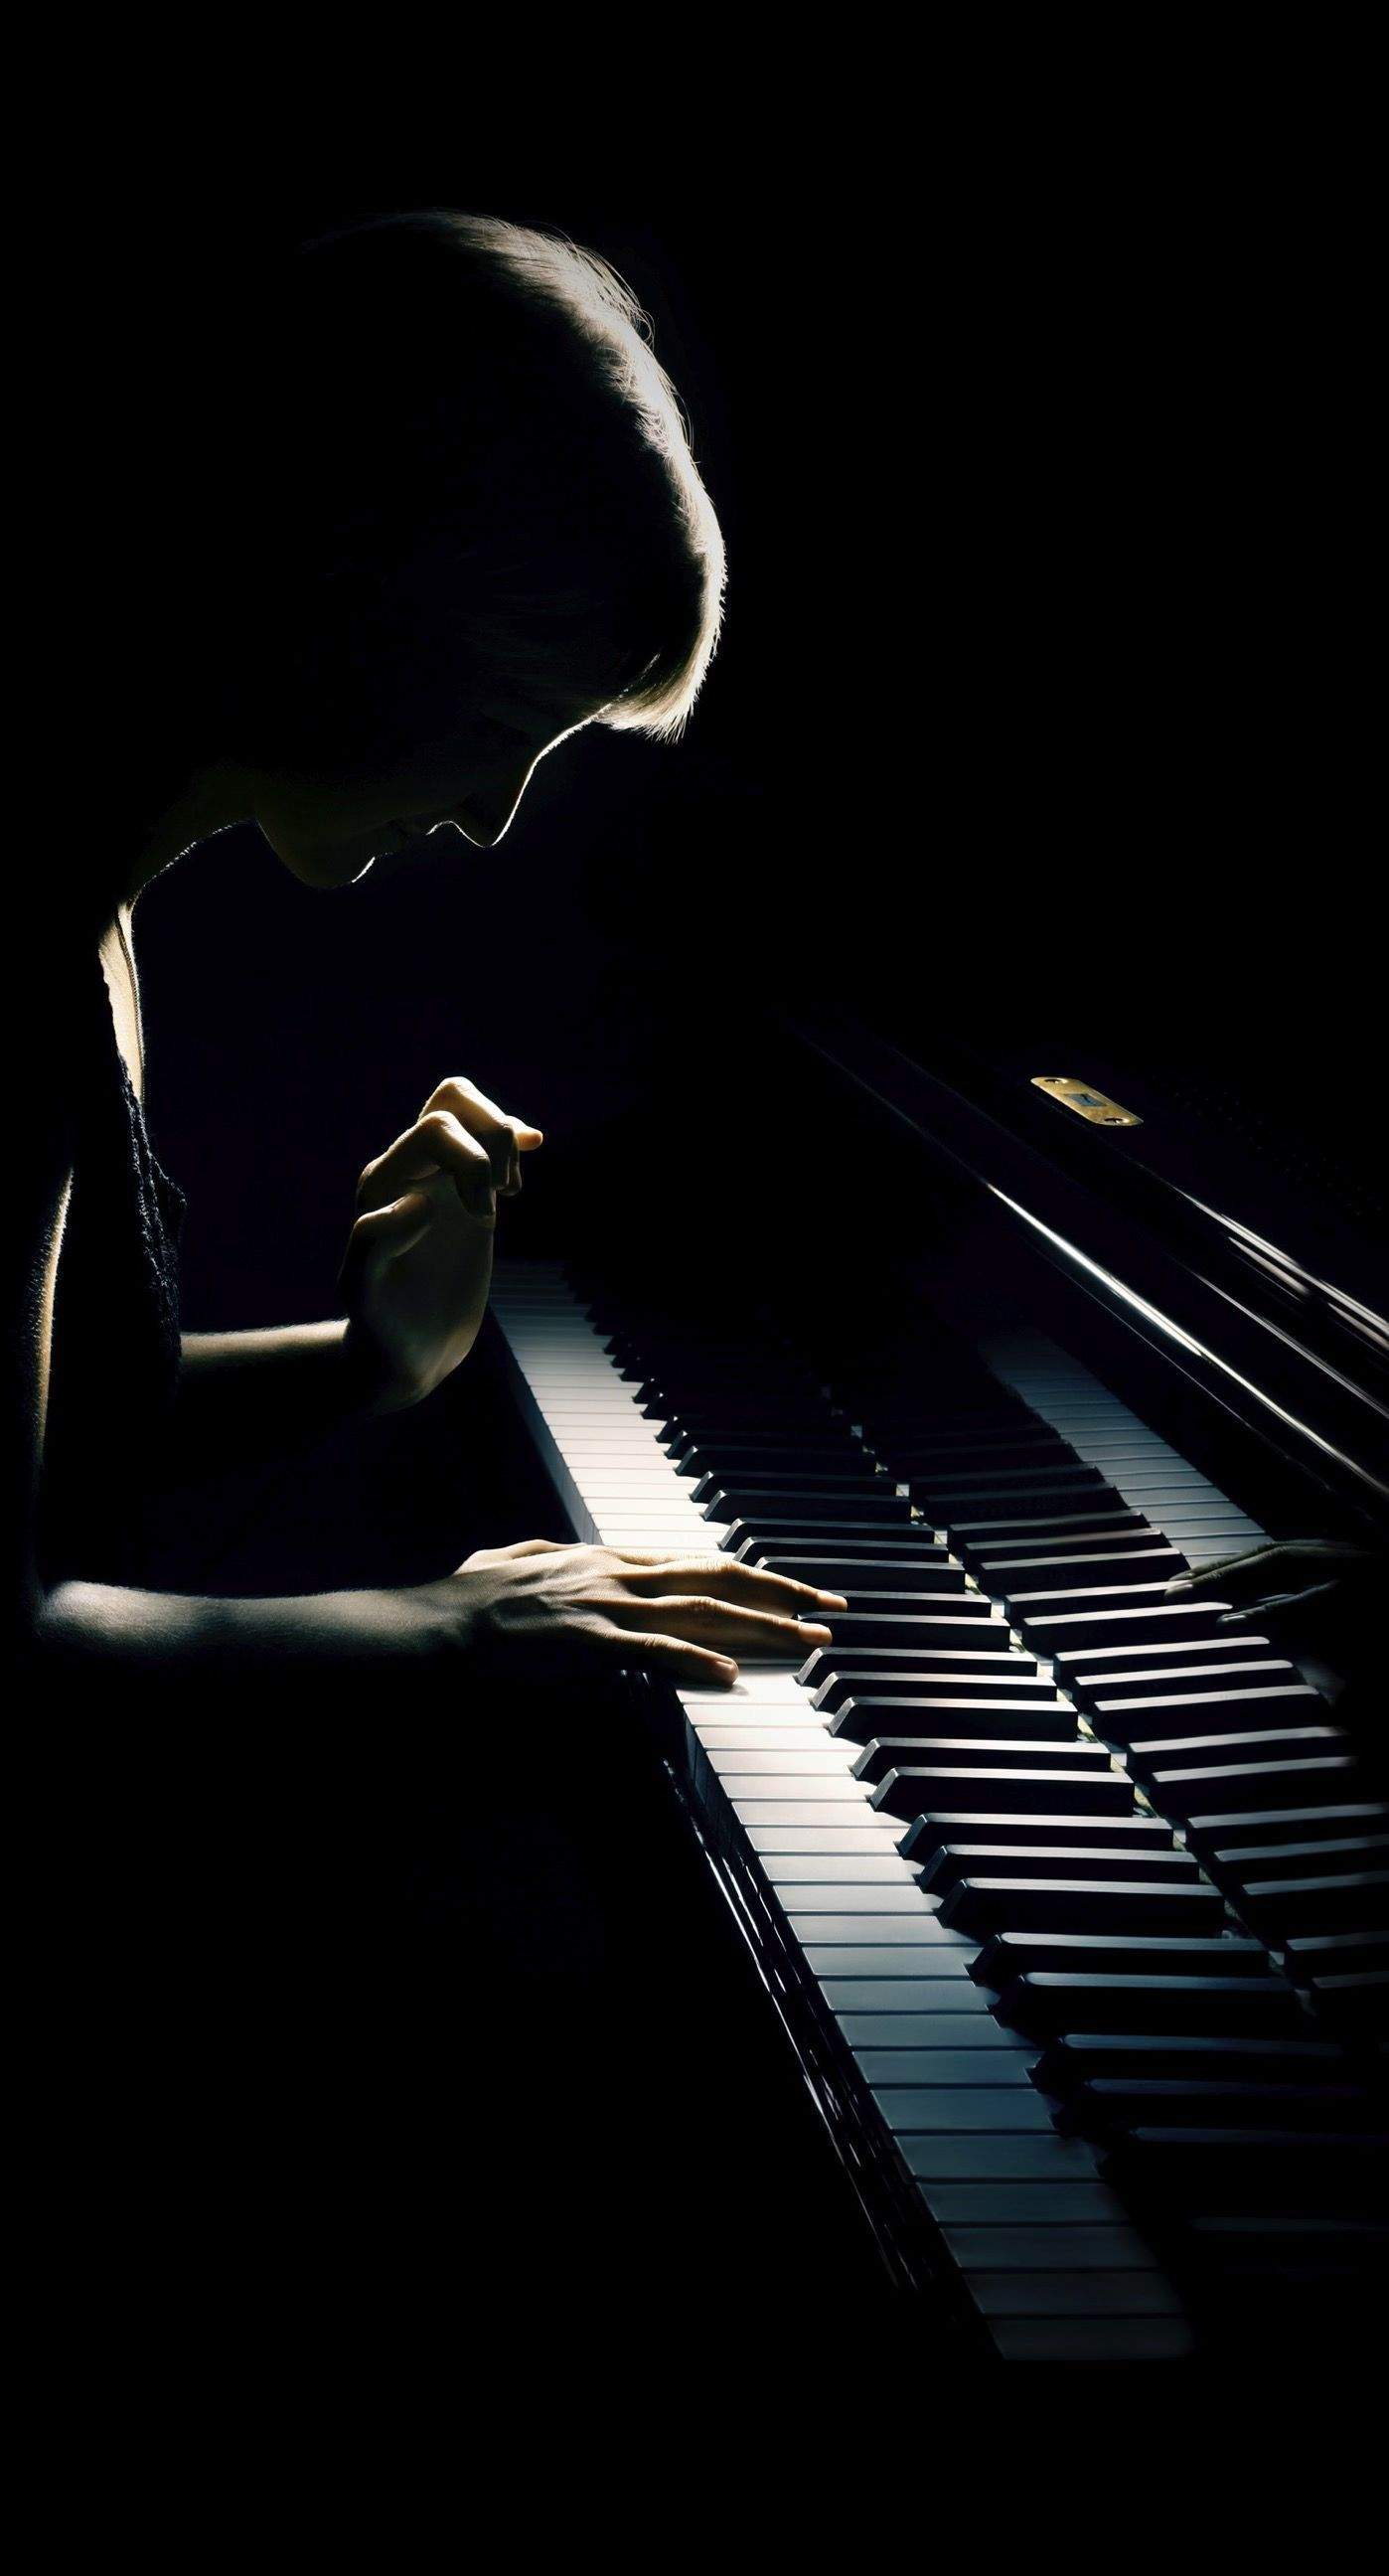 Piano Phone Wallpapers Top Free Piano Phone Backgrounds Wallpaperaccess